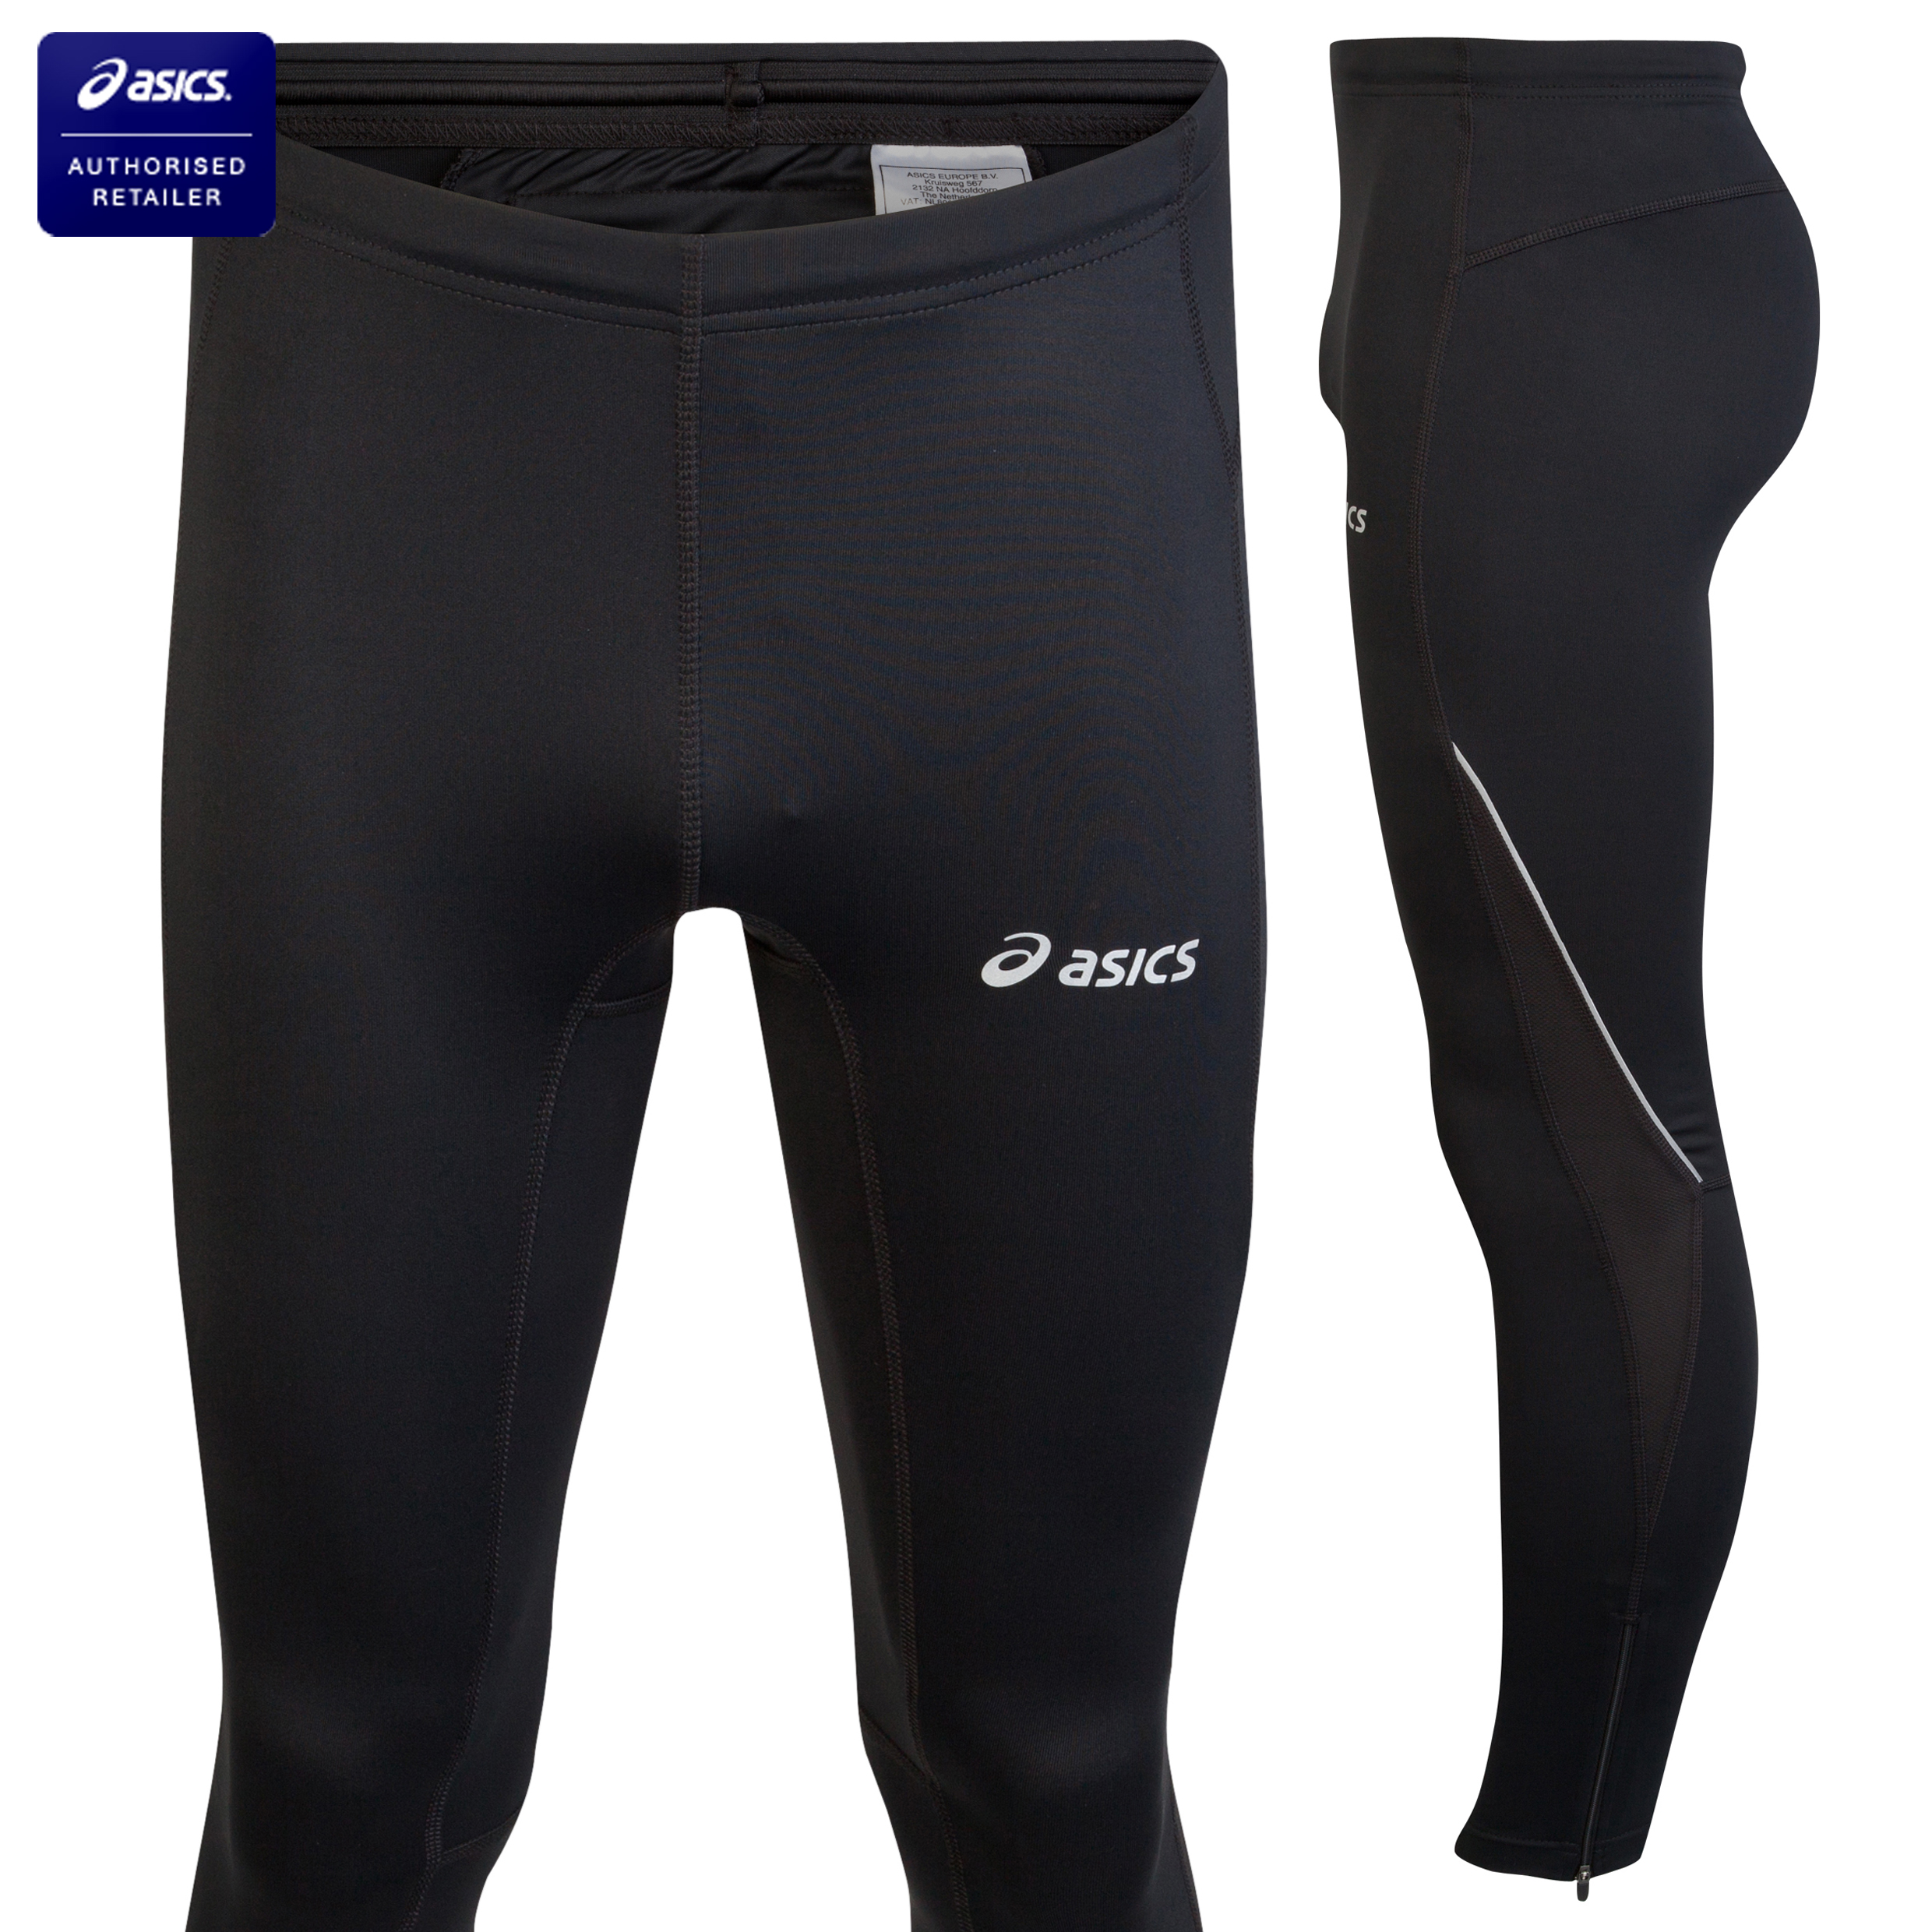 Asics Hermes Tights - Black